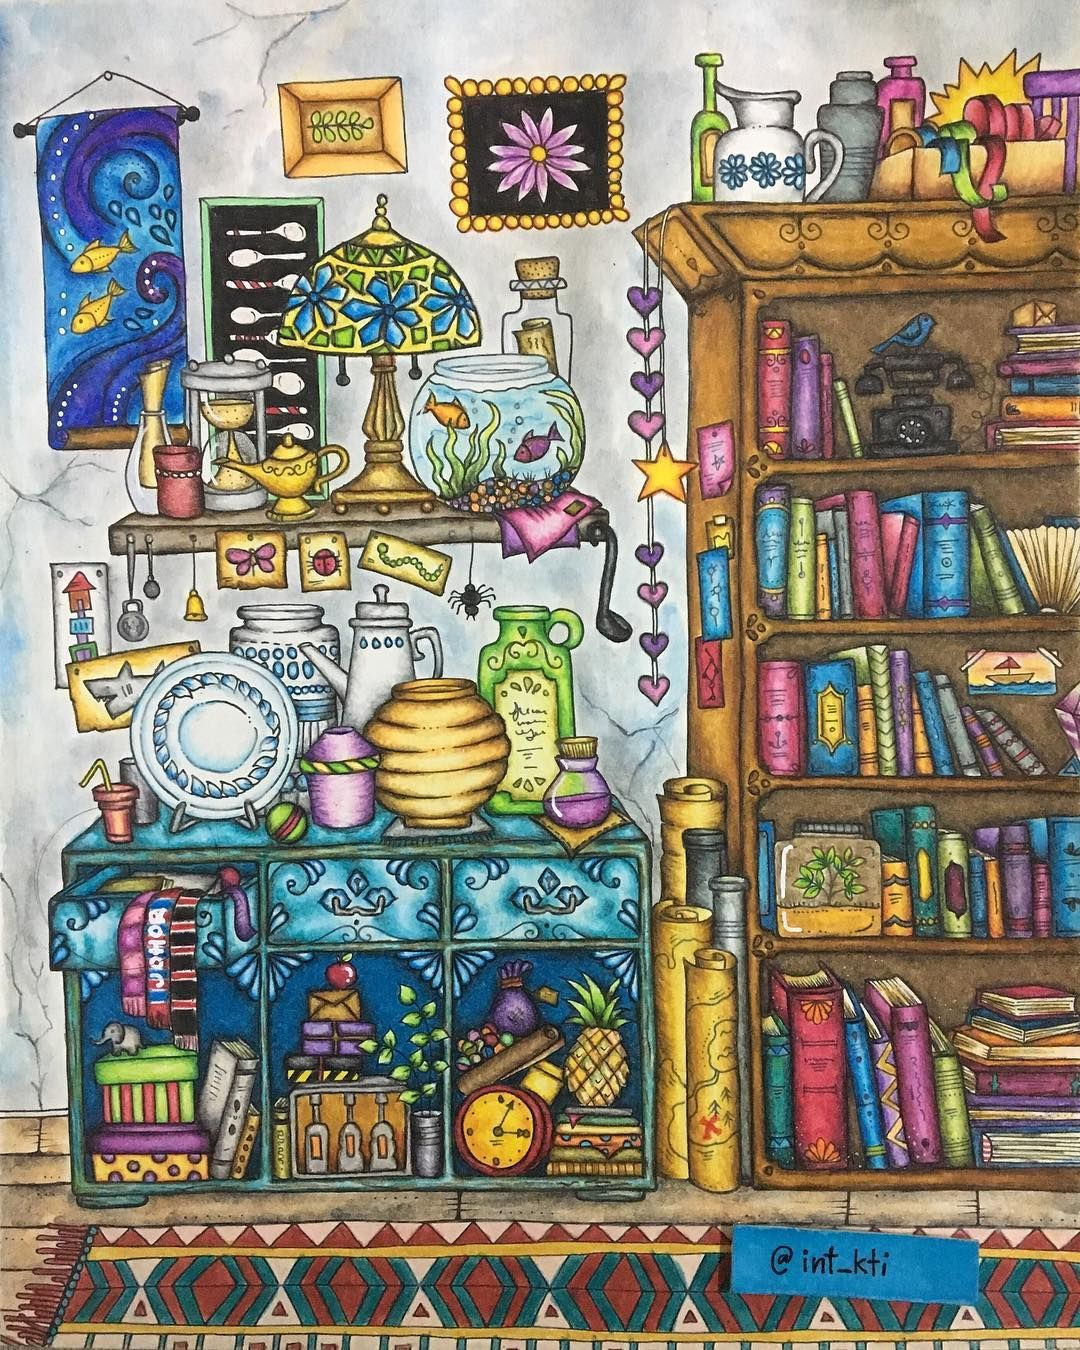 Colorful Book Room: Wonder Room From Ivy And The Inky Butterfly By